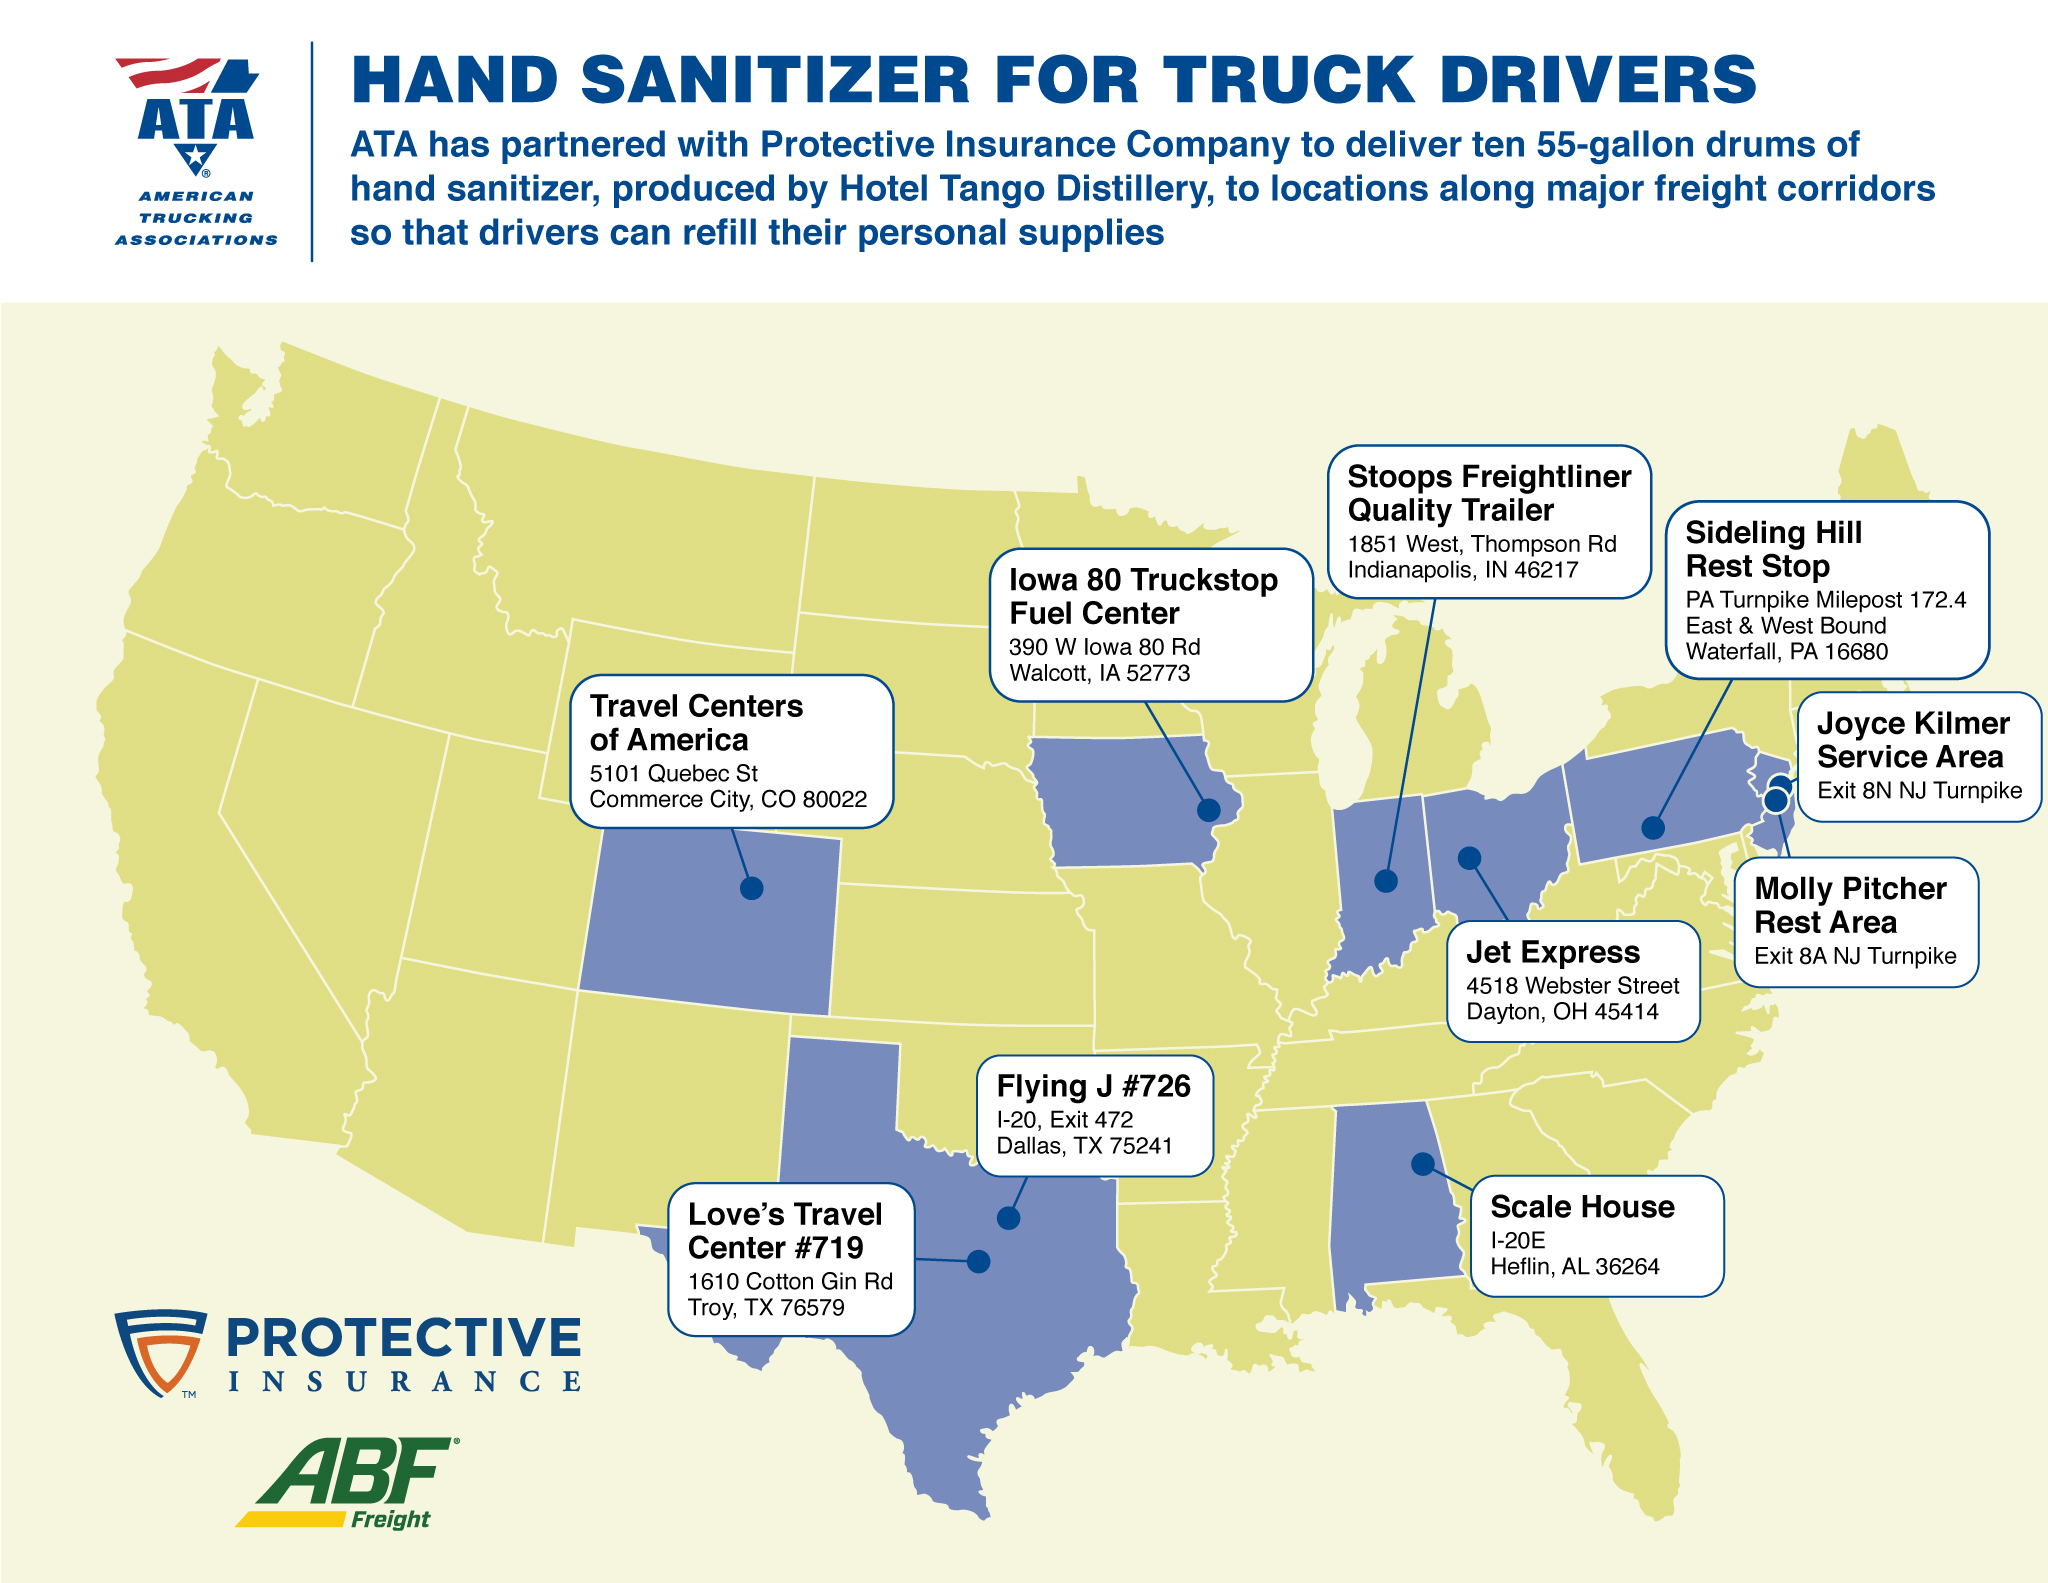 ATA Hand Sanitizer Locations